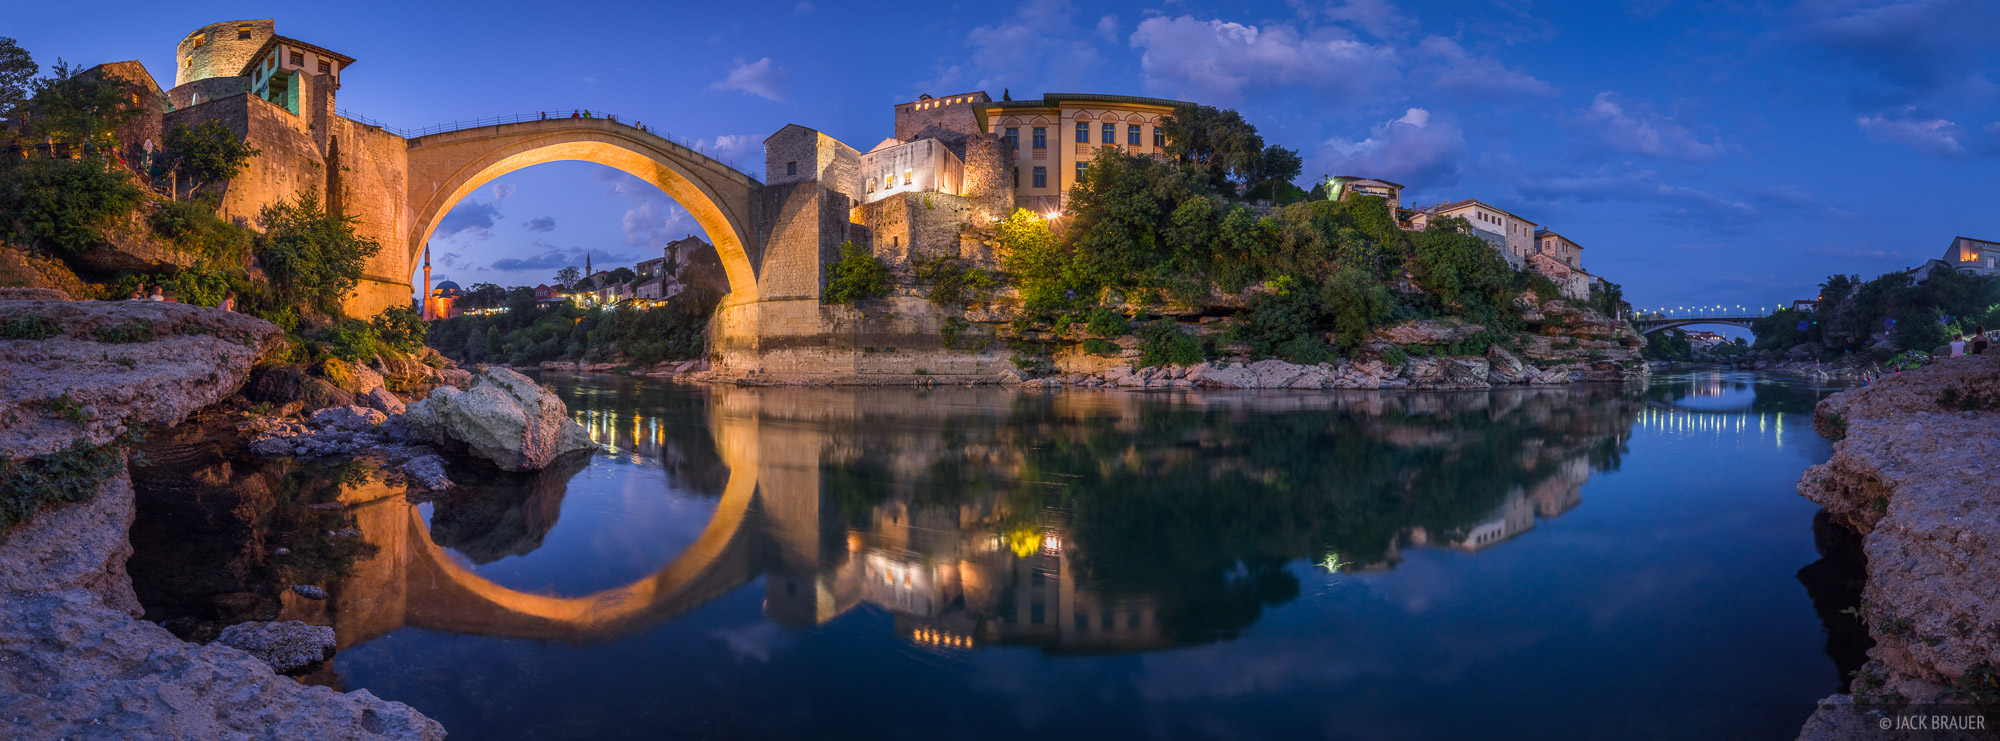 Stari Most, bridge, Mostar, Bosnia, Herzegovina, Neretva, river, reflection